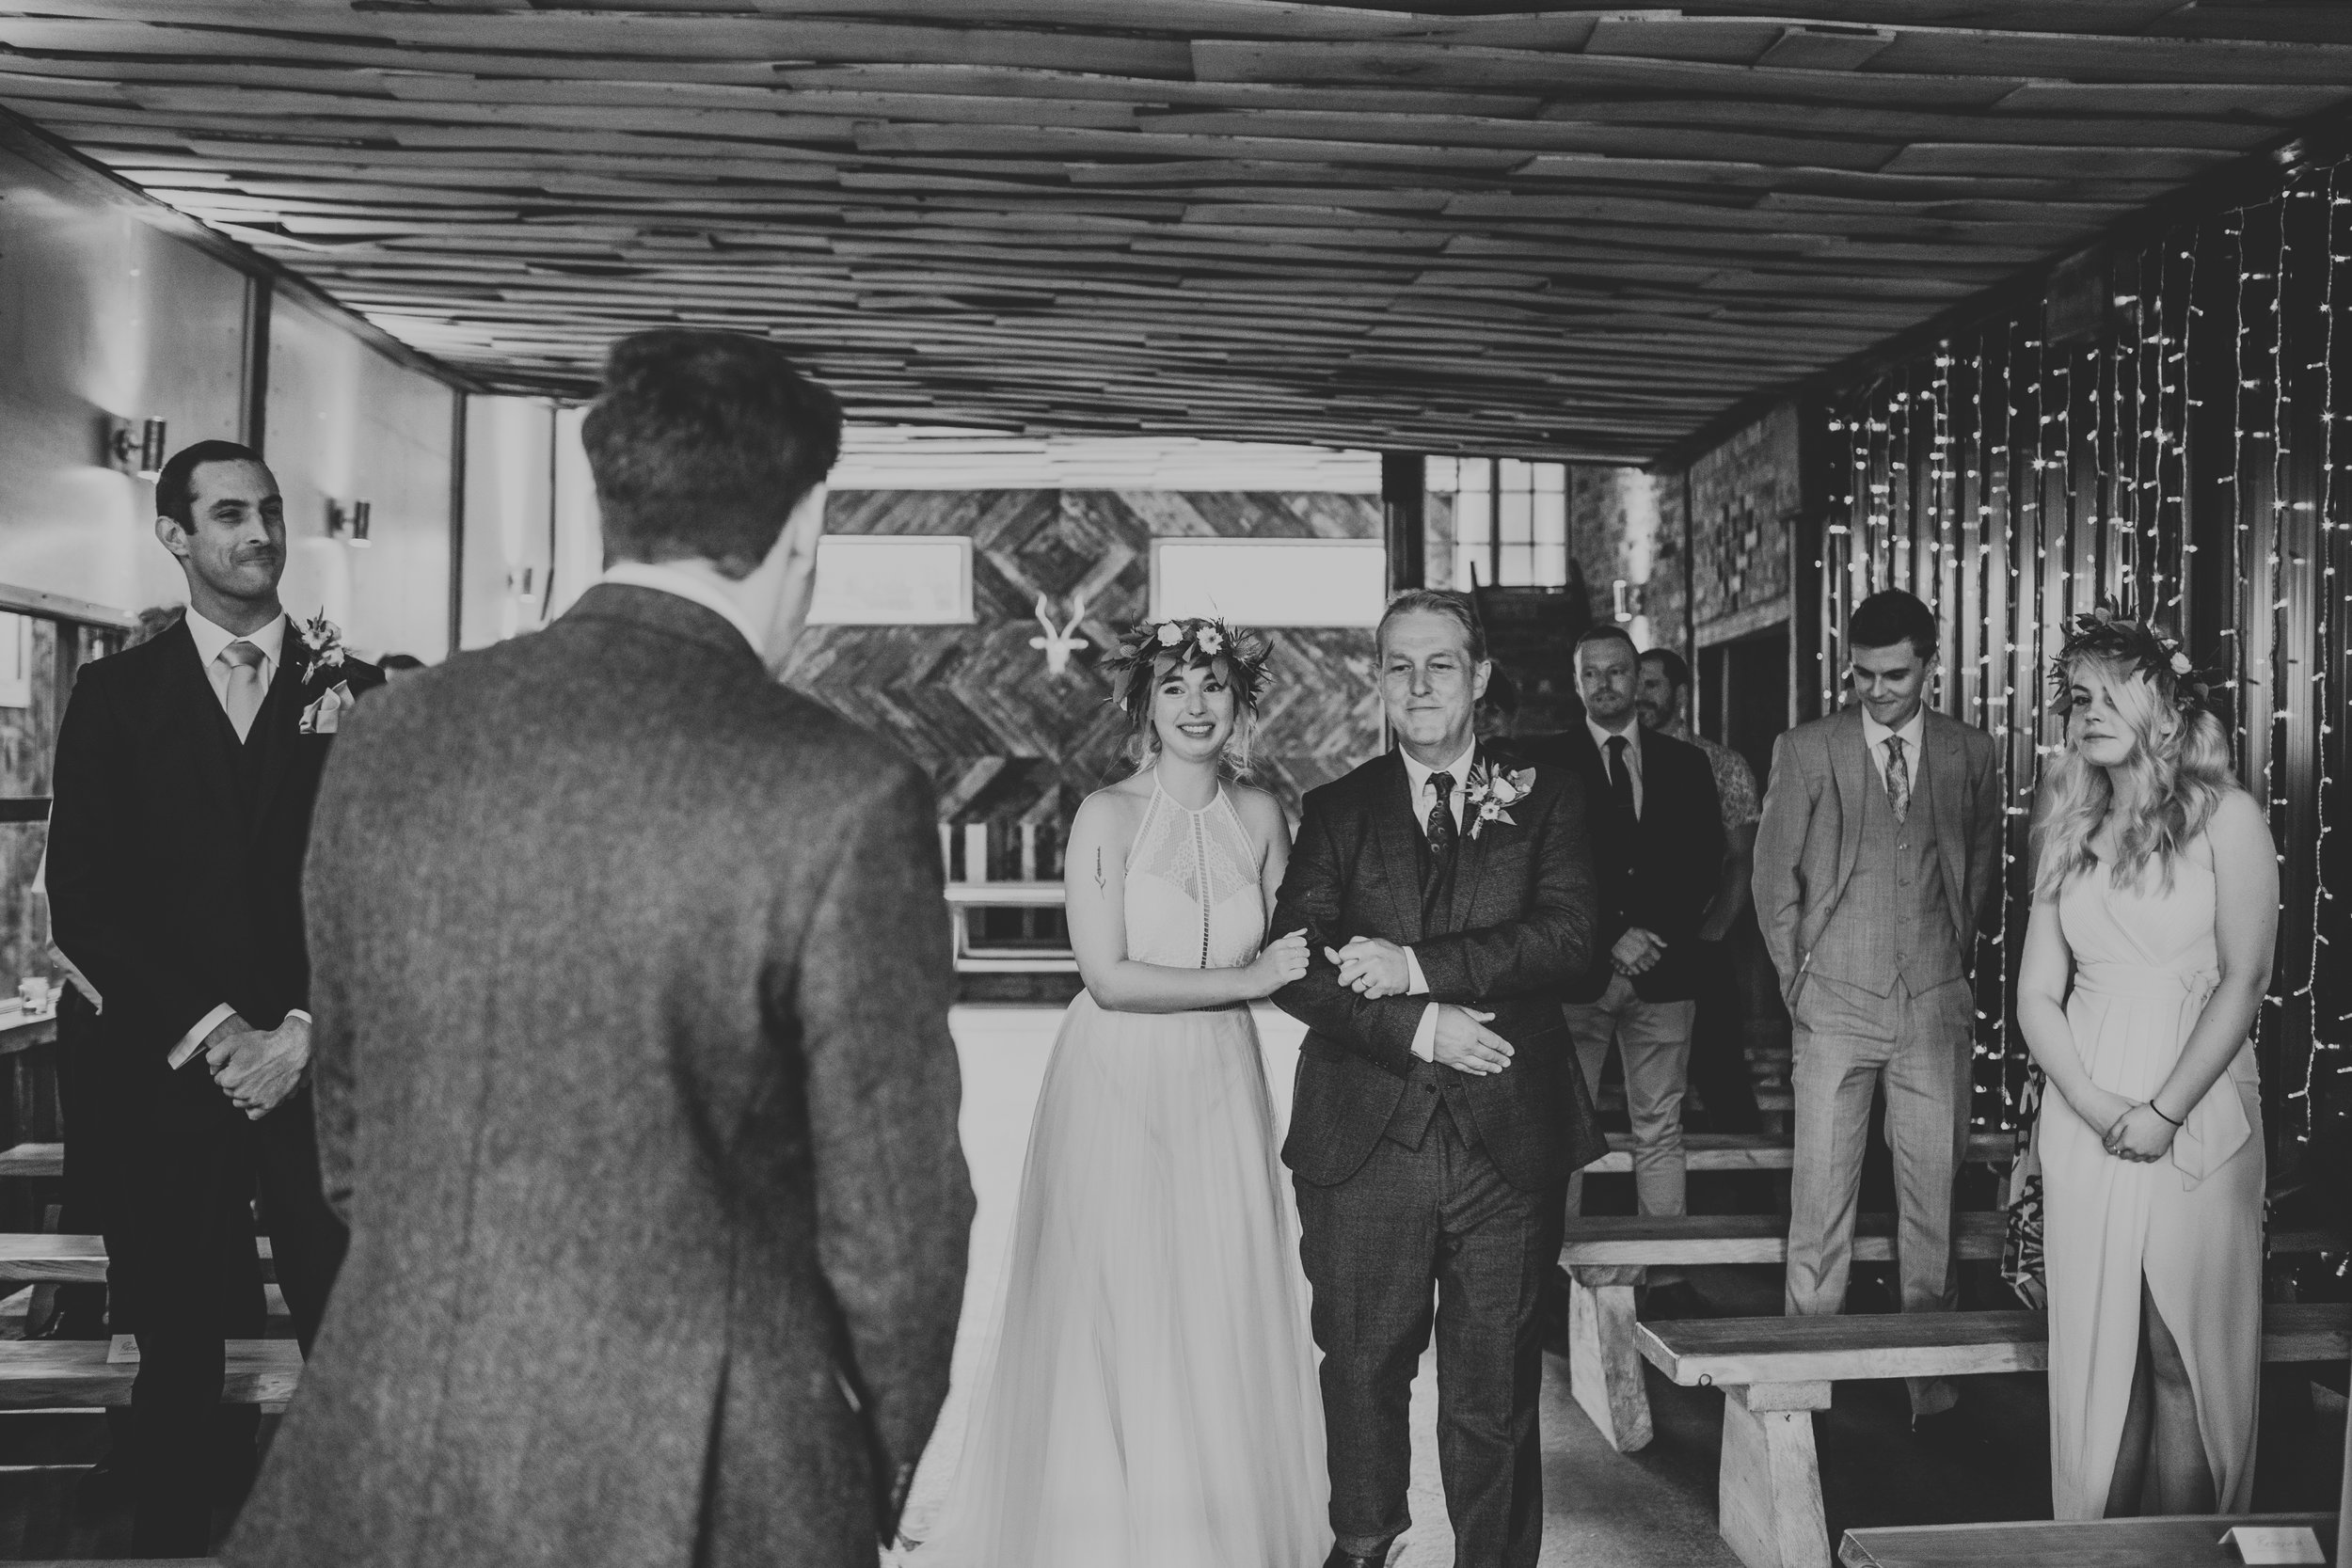 Bride is walked down the aisle by father. Photograph in black and white.